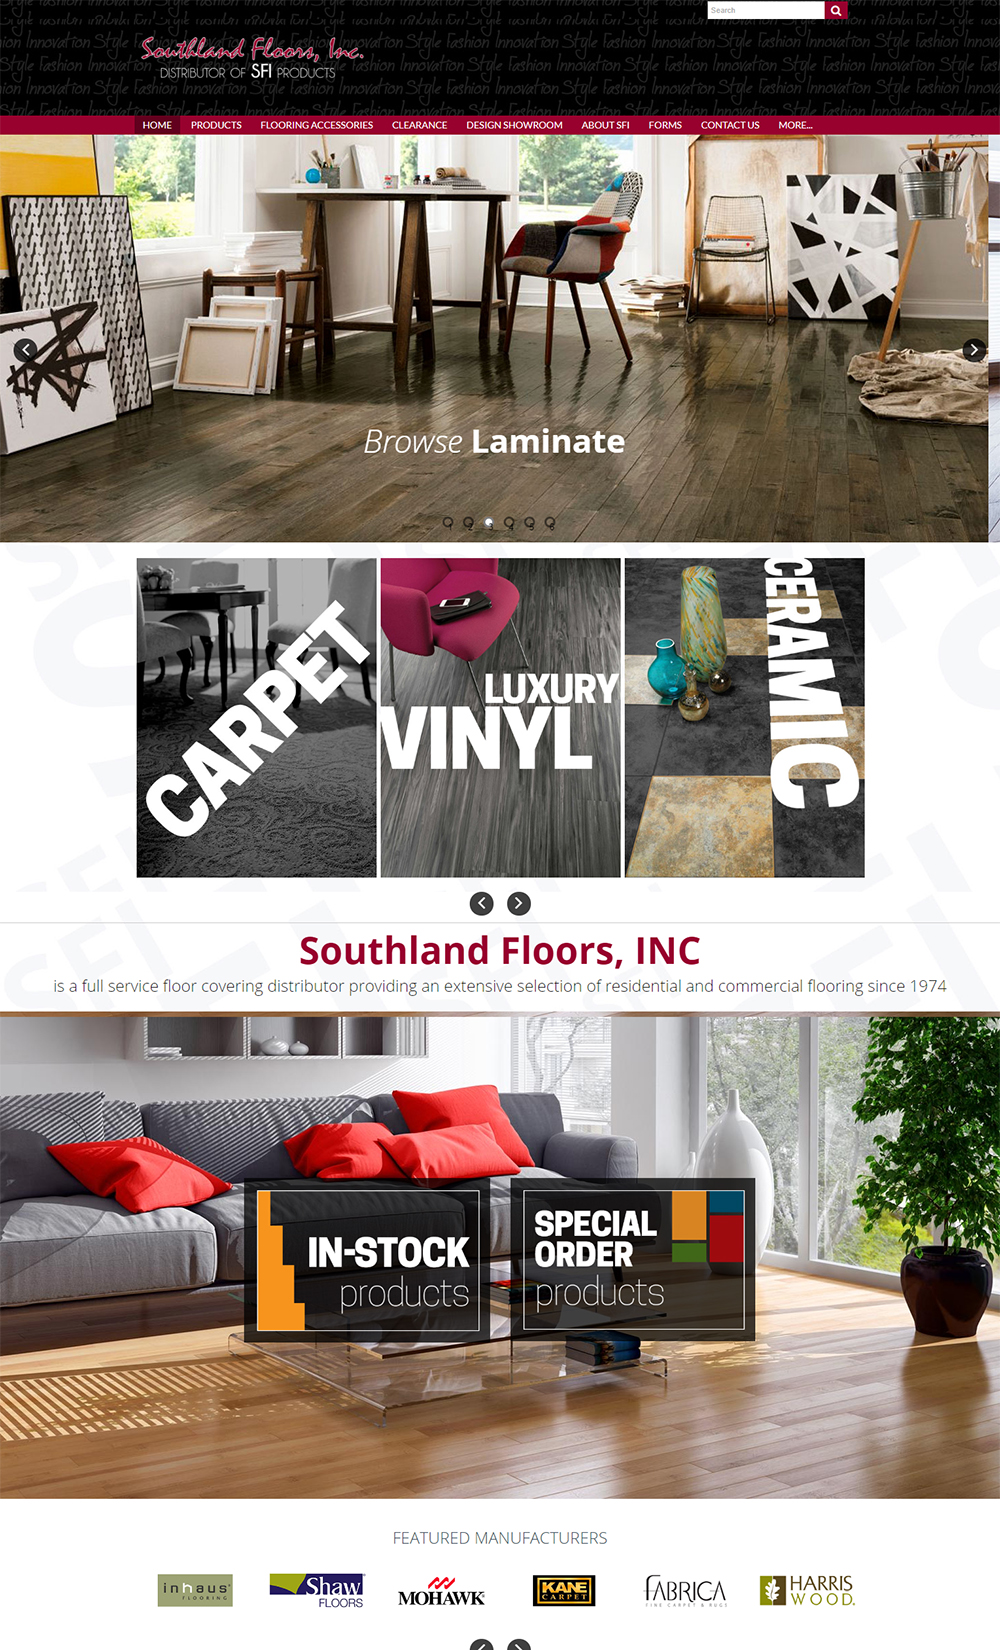 Southland Floors